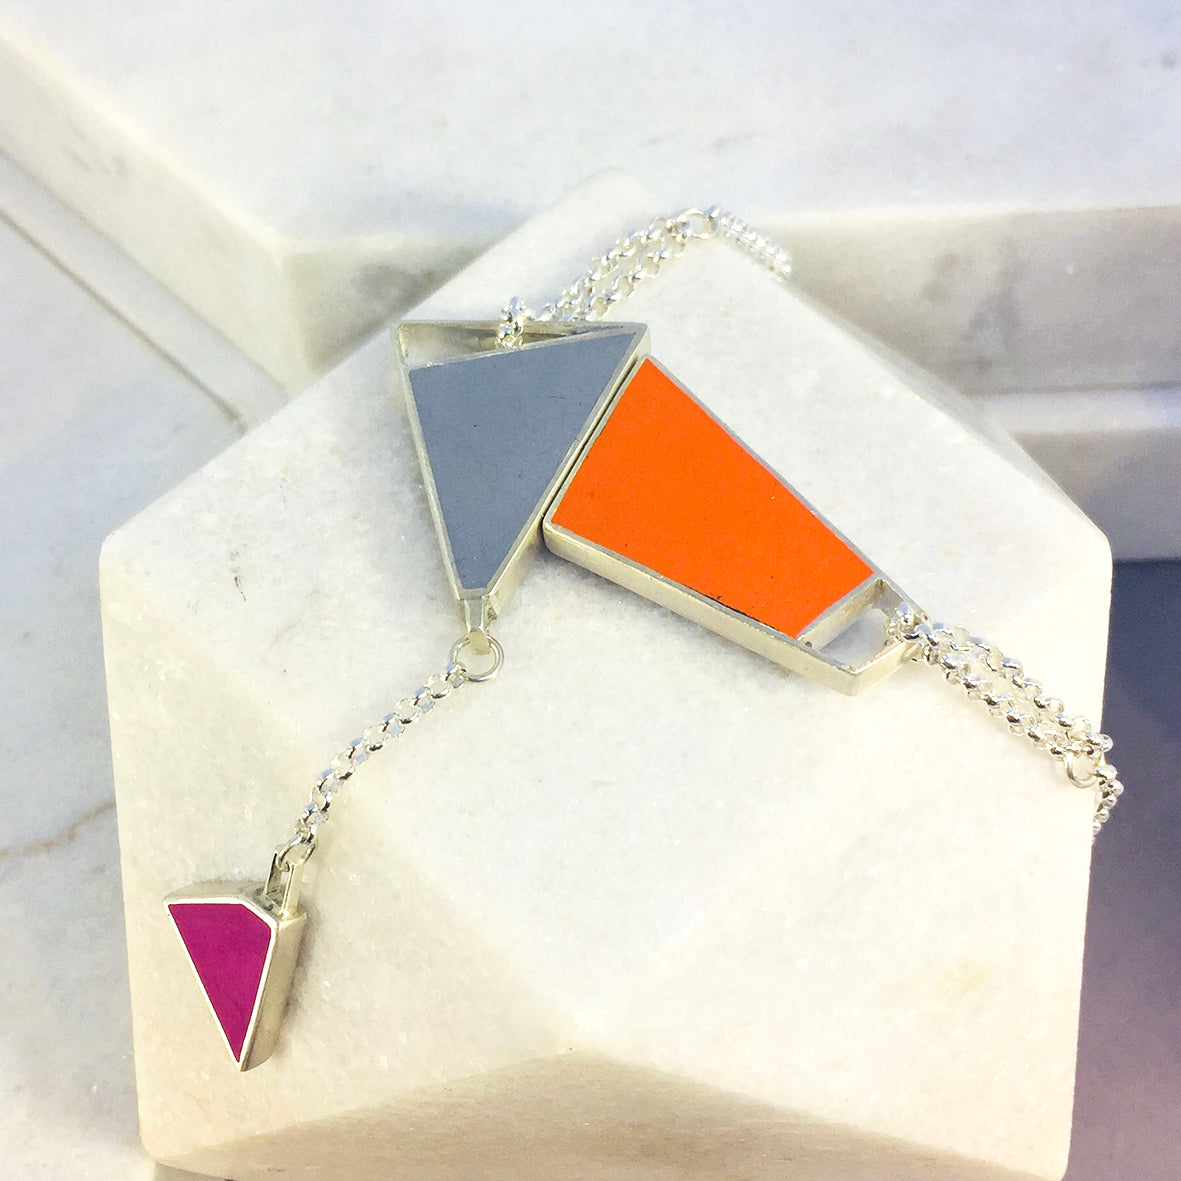 Magnetic - Reversible Necklace - 24 combinations - orange, grey, blue, green with green/pink drop